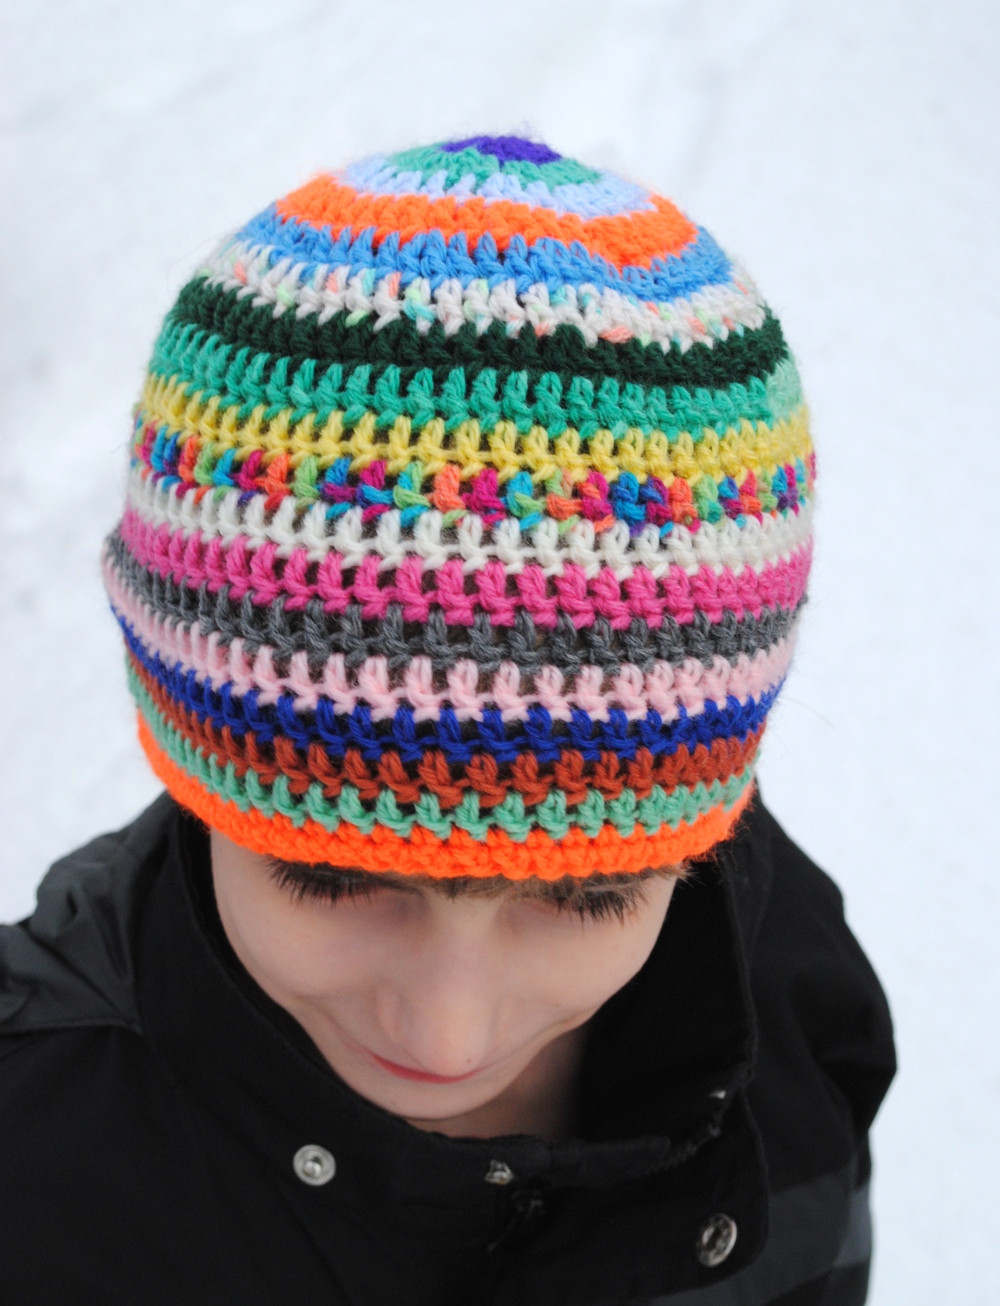 Easy Crochet Hat Patterns Awesome Easy Charity Crochet Beanie Hat – Free Pattern Of Innovative 46 Pictures Easy Crochet Hat Patterns